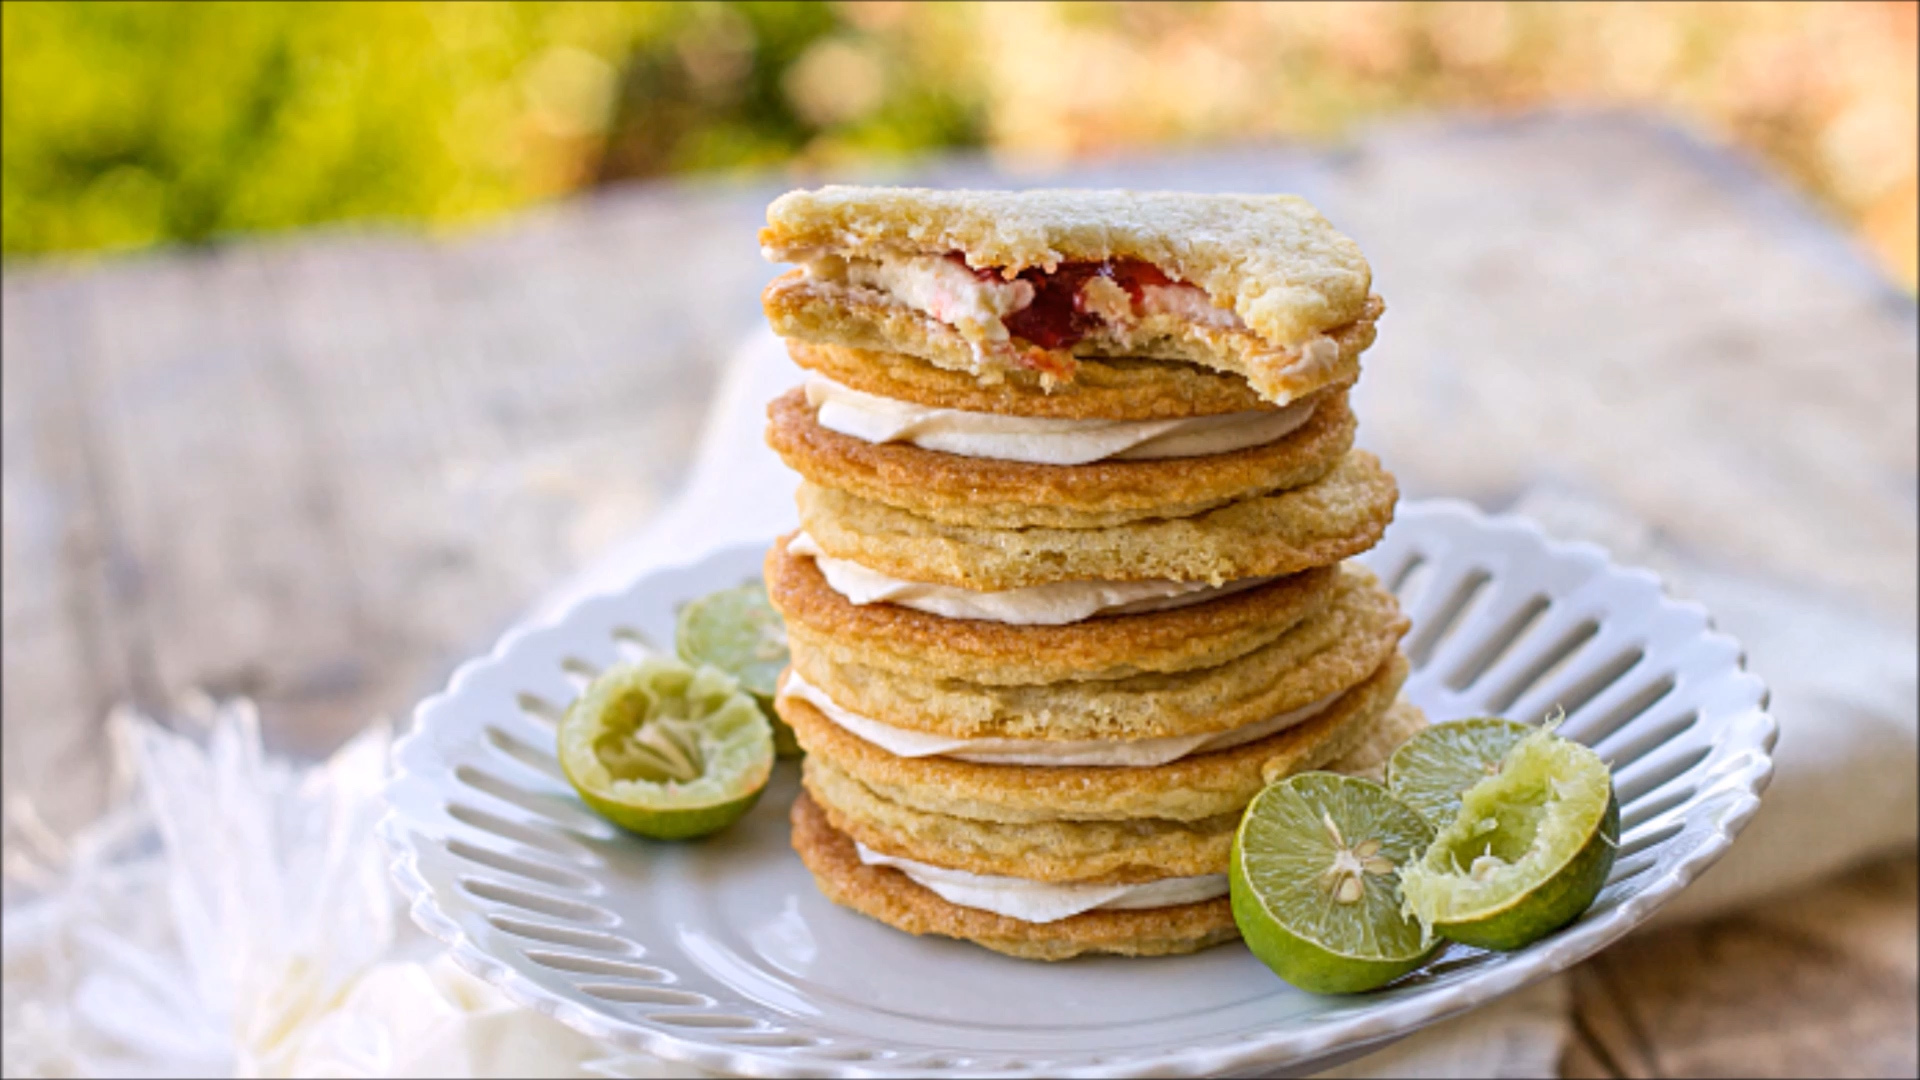 How to Make Key Lime Raspberry Sandwich Cookies